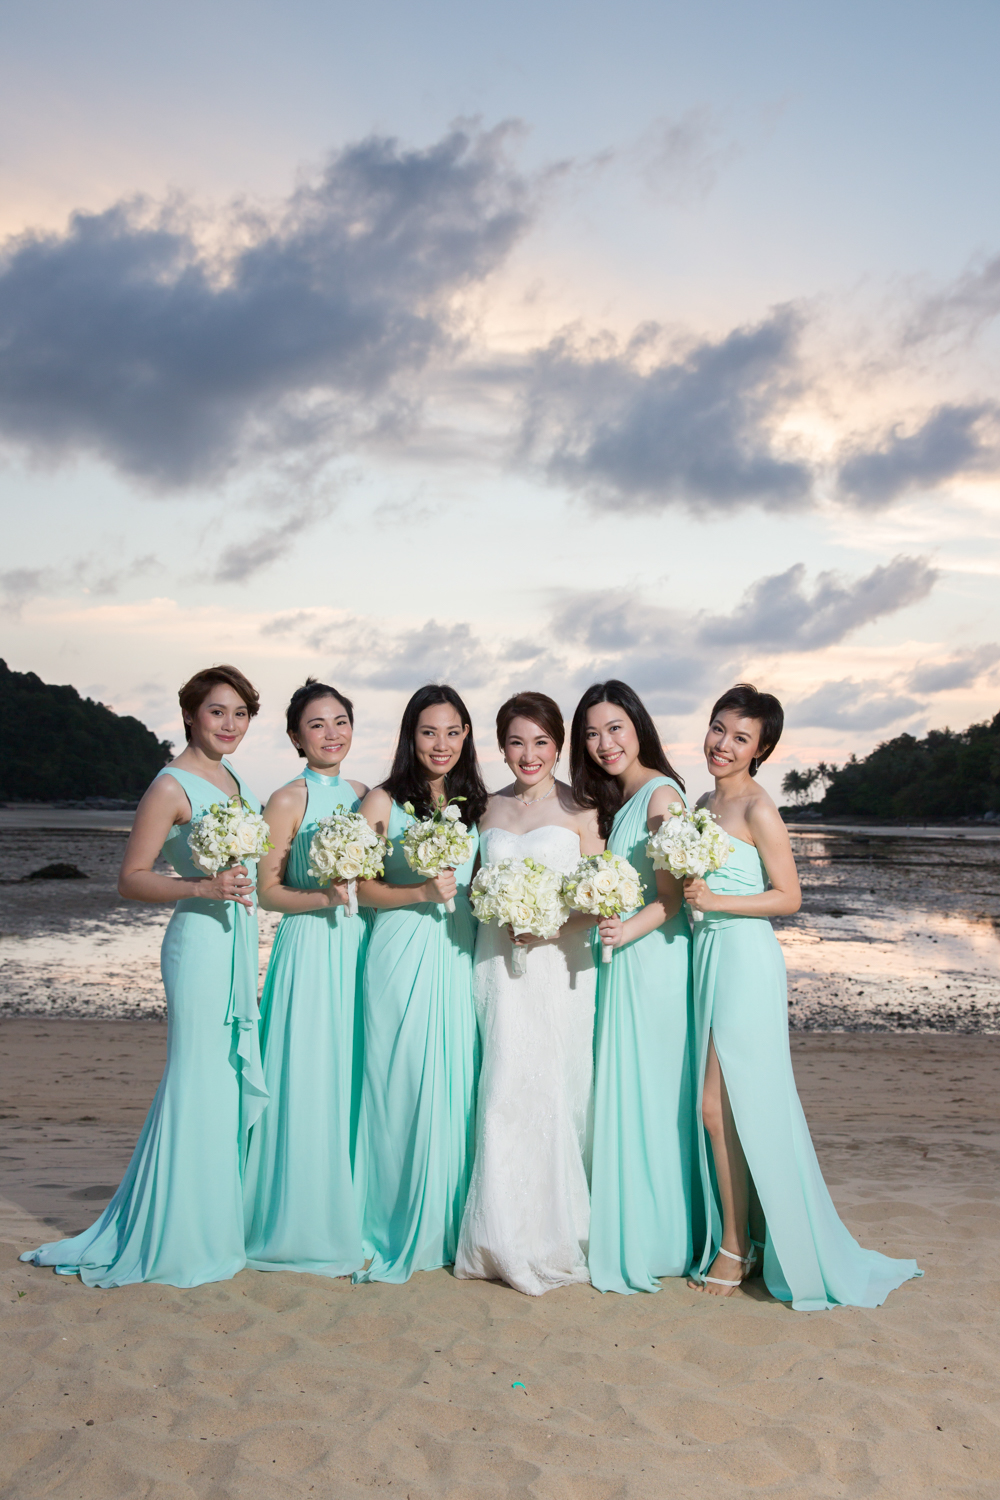 Wedding at Anantara Layan Phuket Resort by Nindka Photography